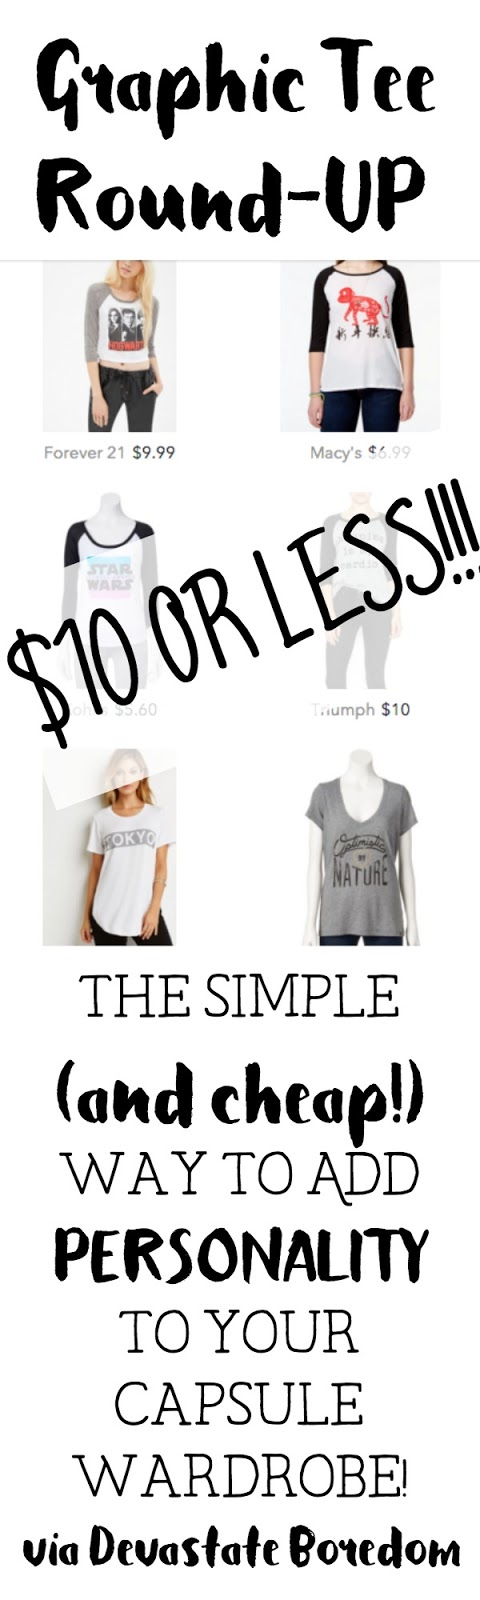 $10 Or Less Graphic Tees Round Up!  The Easy and Cheap Way to Add Personality To Your Minimalist Capsule Wardrobe - Something for Every Style!  via Devastate Boredom